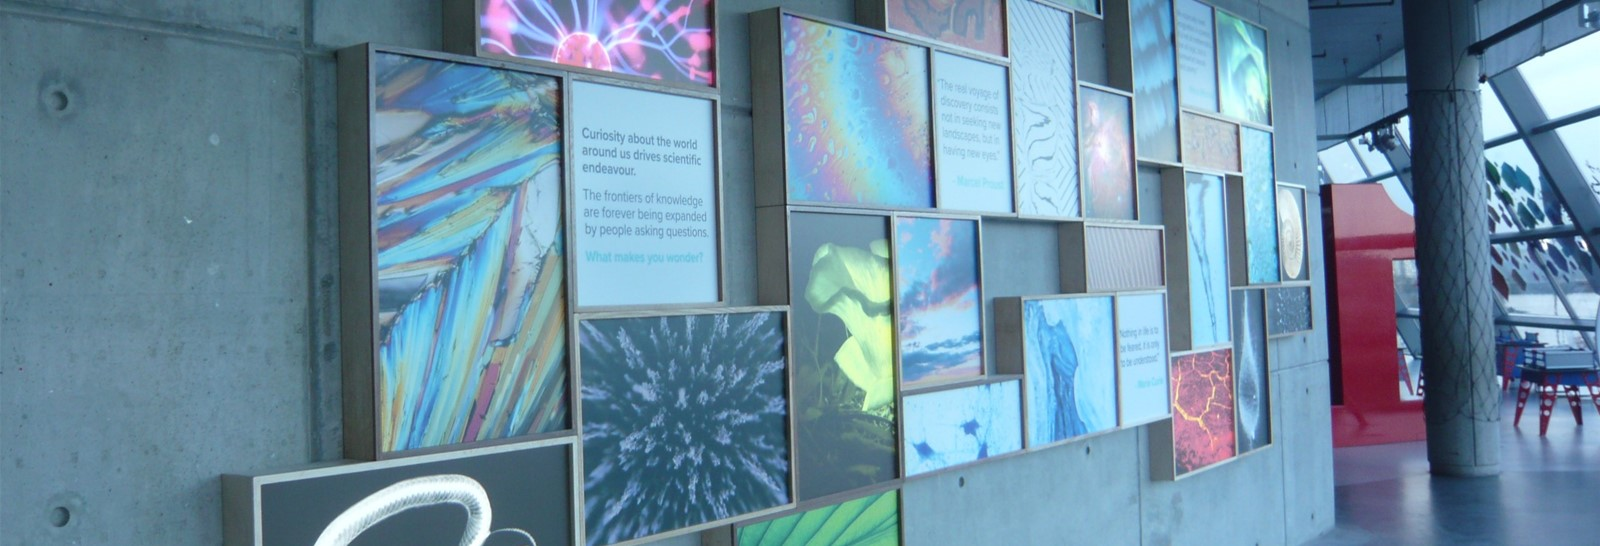 Light boxes at Glasgow Science Centre